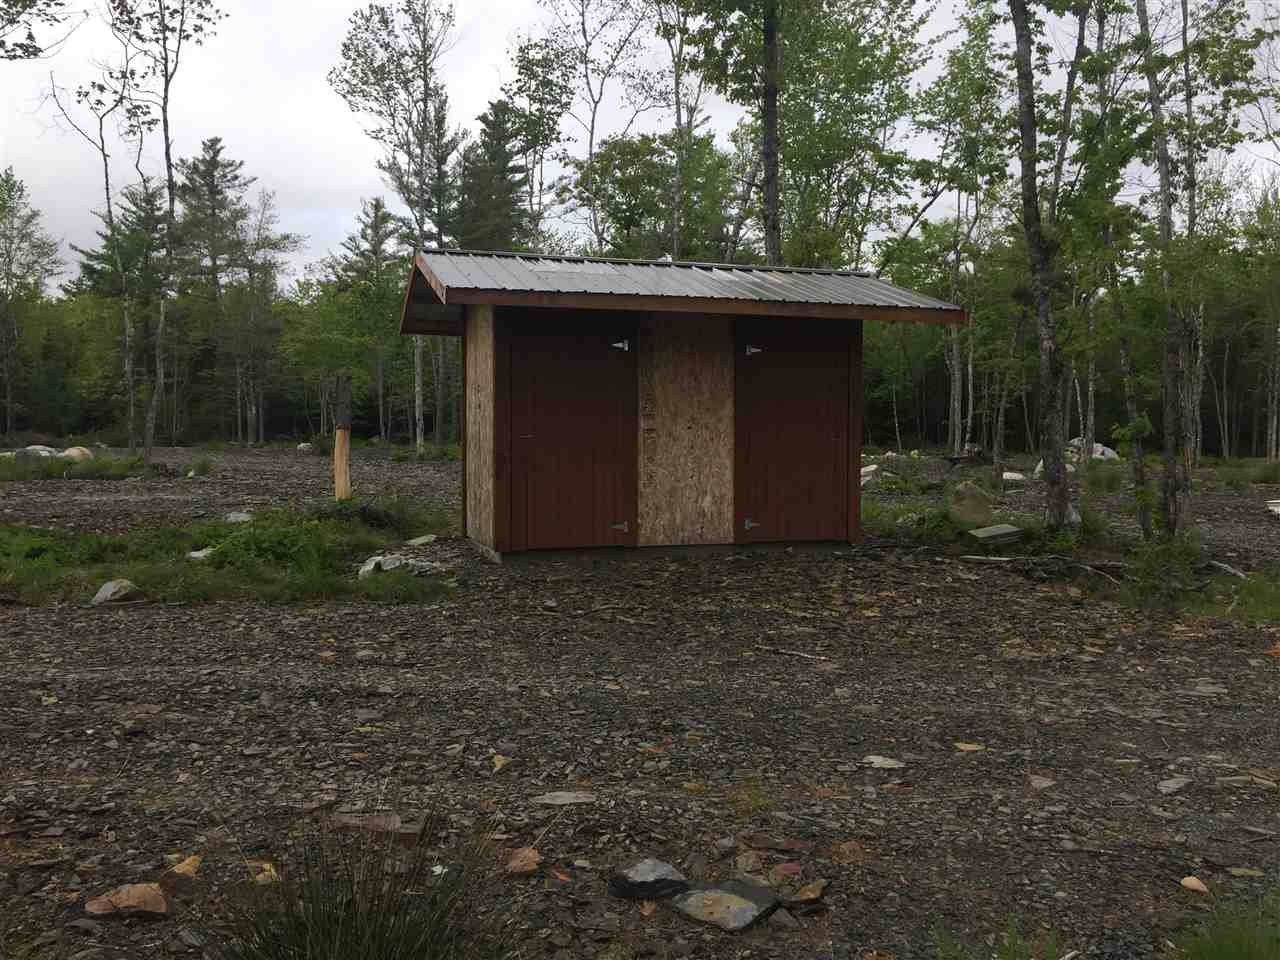 Photo 5: Photos: 6720 Hwy 325 in West Clifford: 405-Lunenburg County Commercial for sale (South Shore)  : MLS®# 202011822